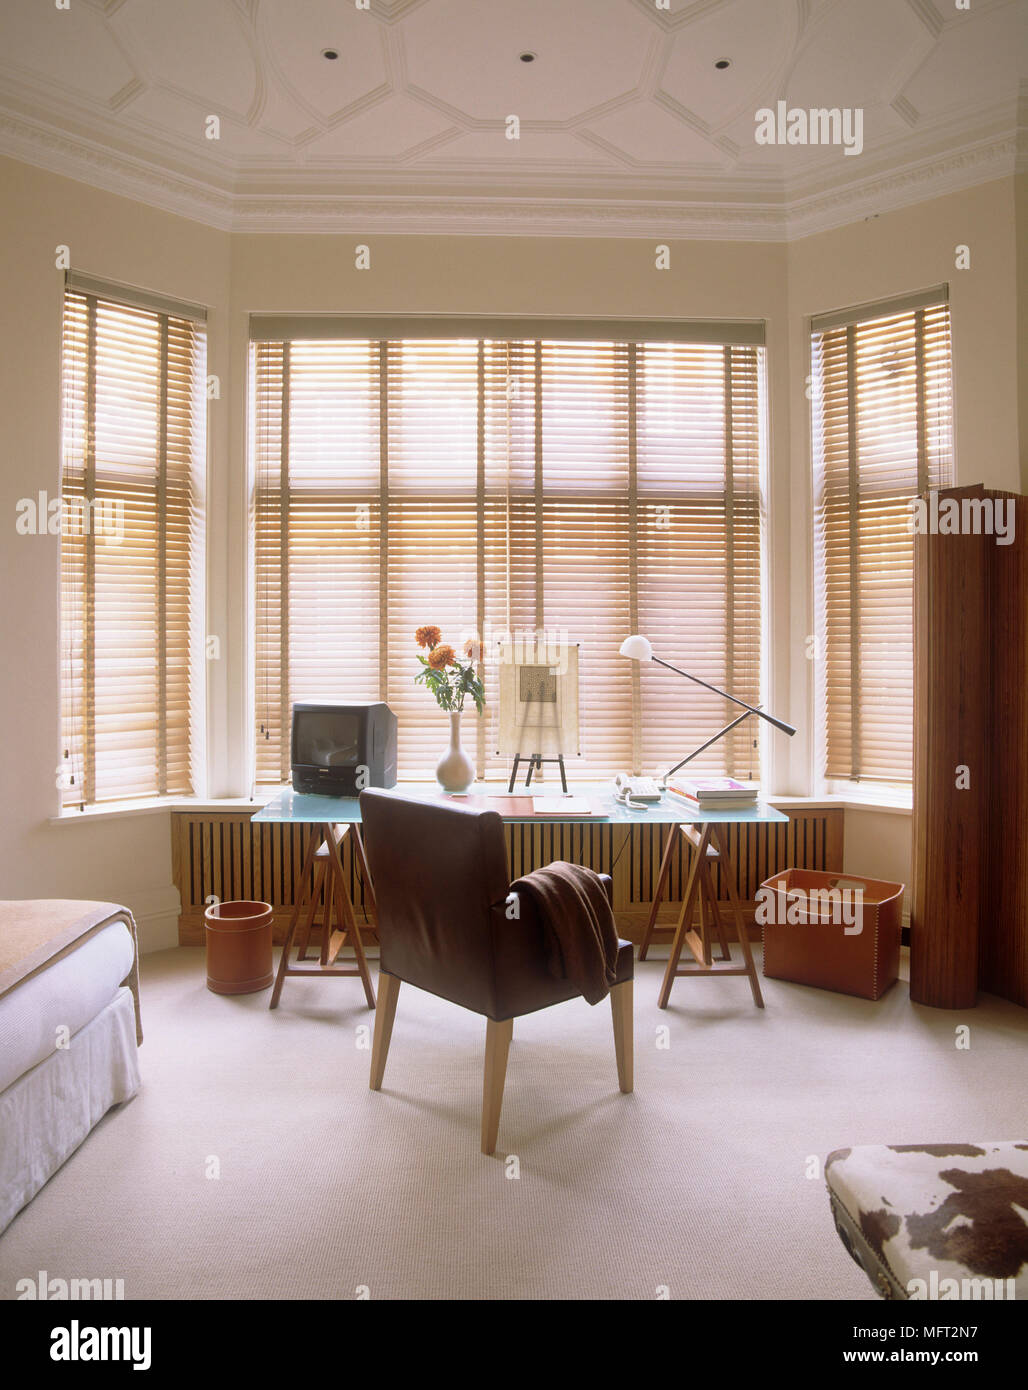 bedroom glass chair reclining adirondack chairs top table in with upholstered set bay window